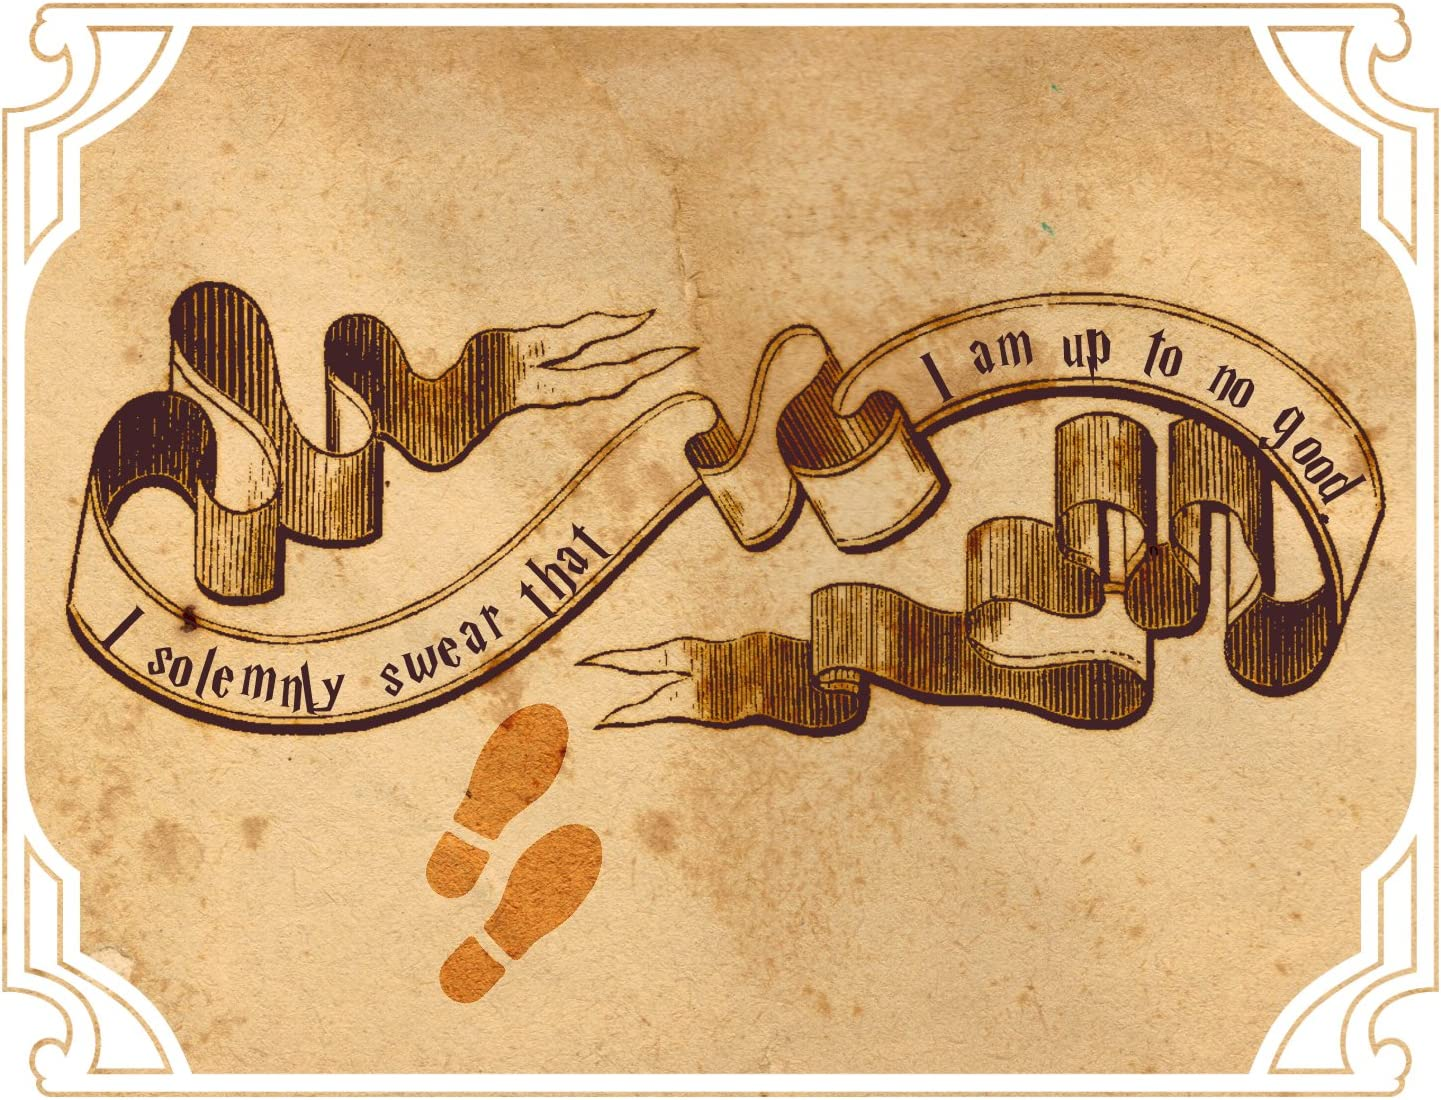 Decal Serpent I Solemnly Swear I Am Up to No Good Footprints Map Sticker 5